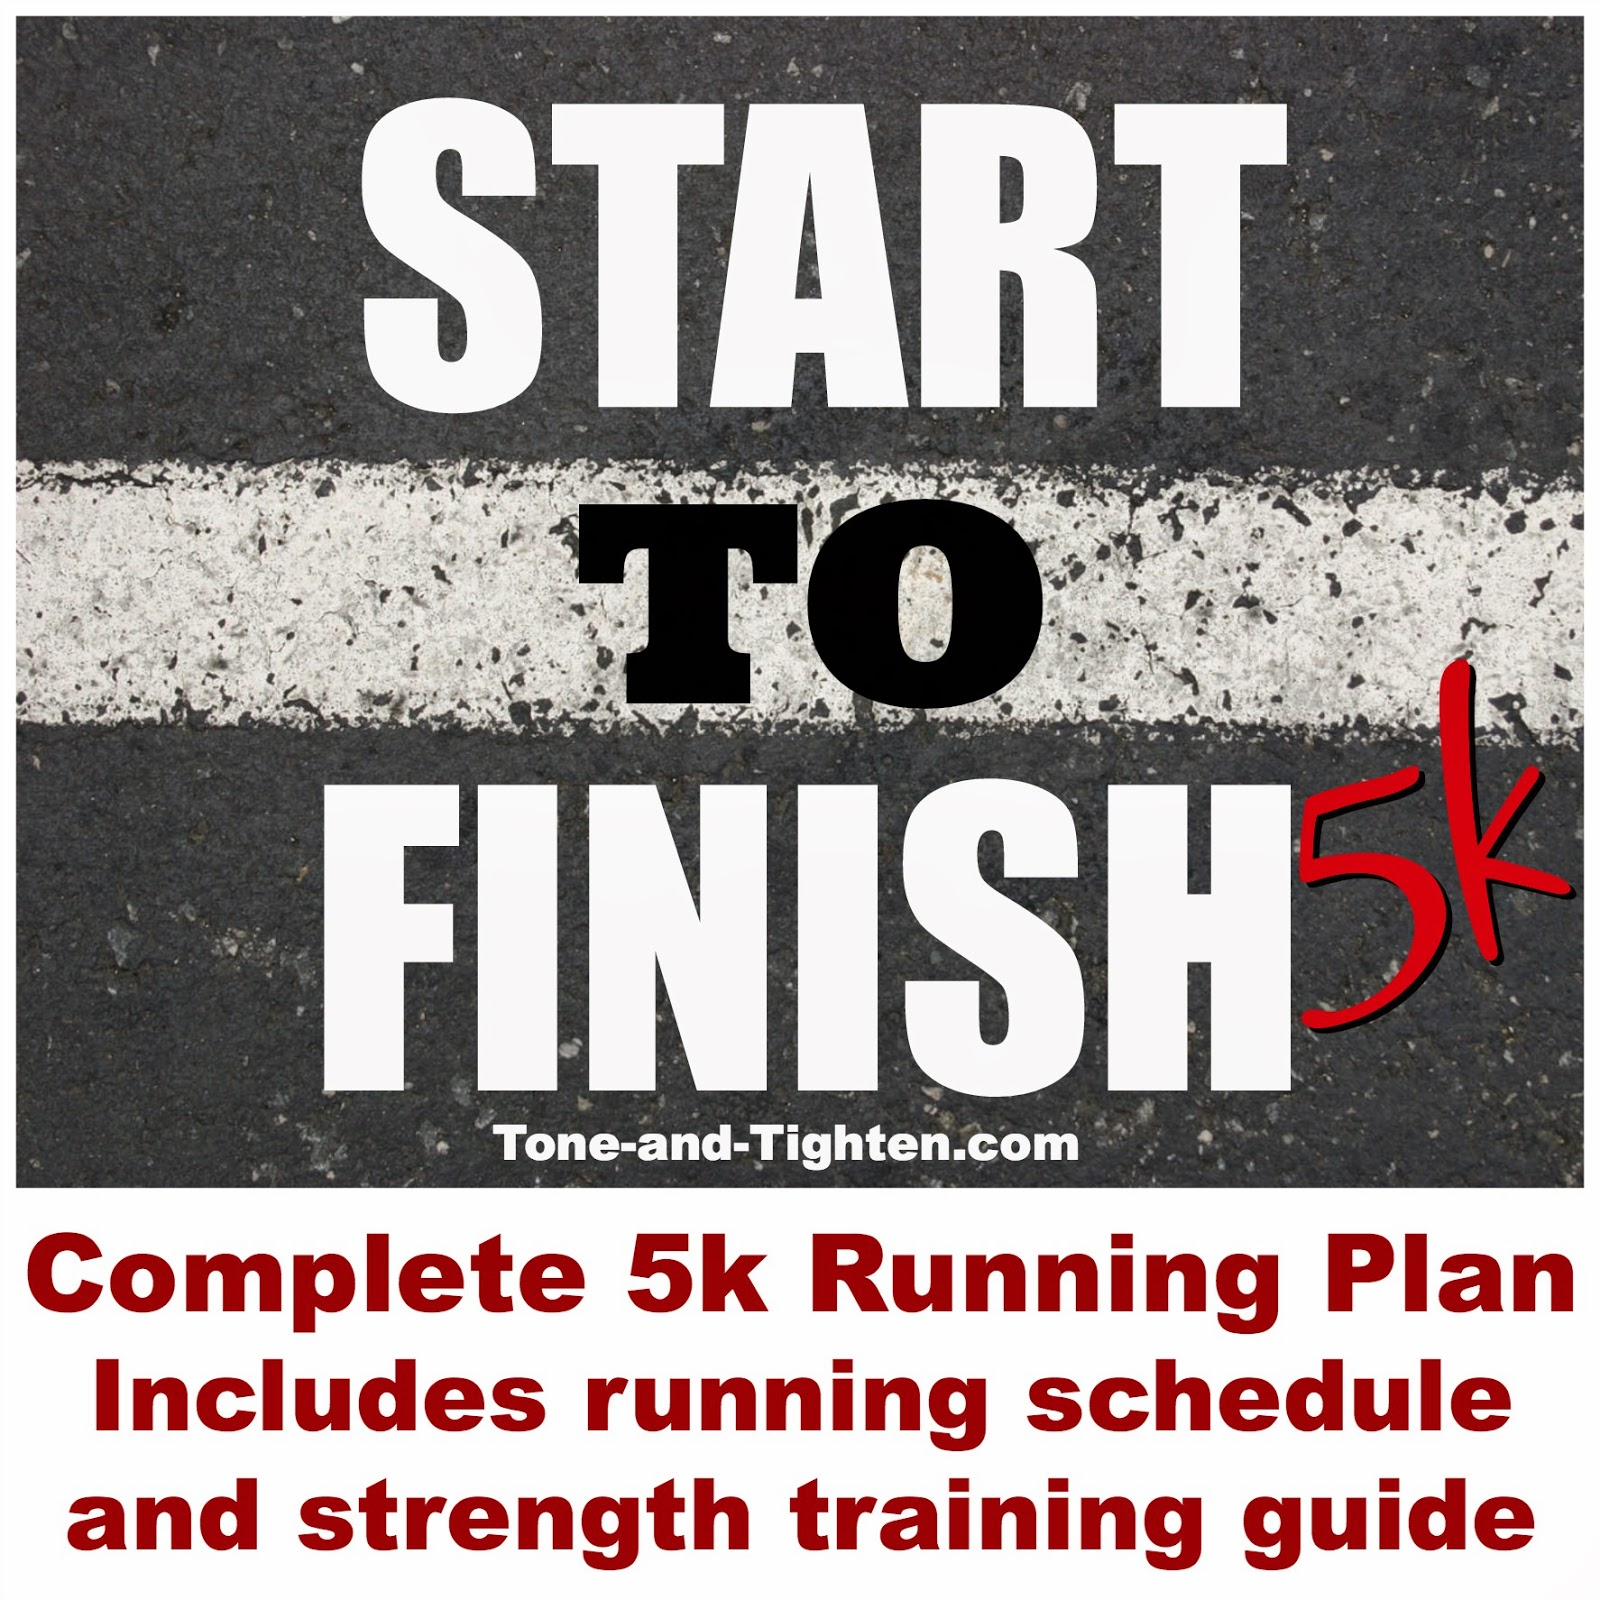 http://tone-and-tighten.com/2014/03/start-to-finish-5k-free-downloadable-5k-running-program.html